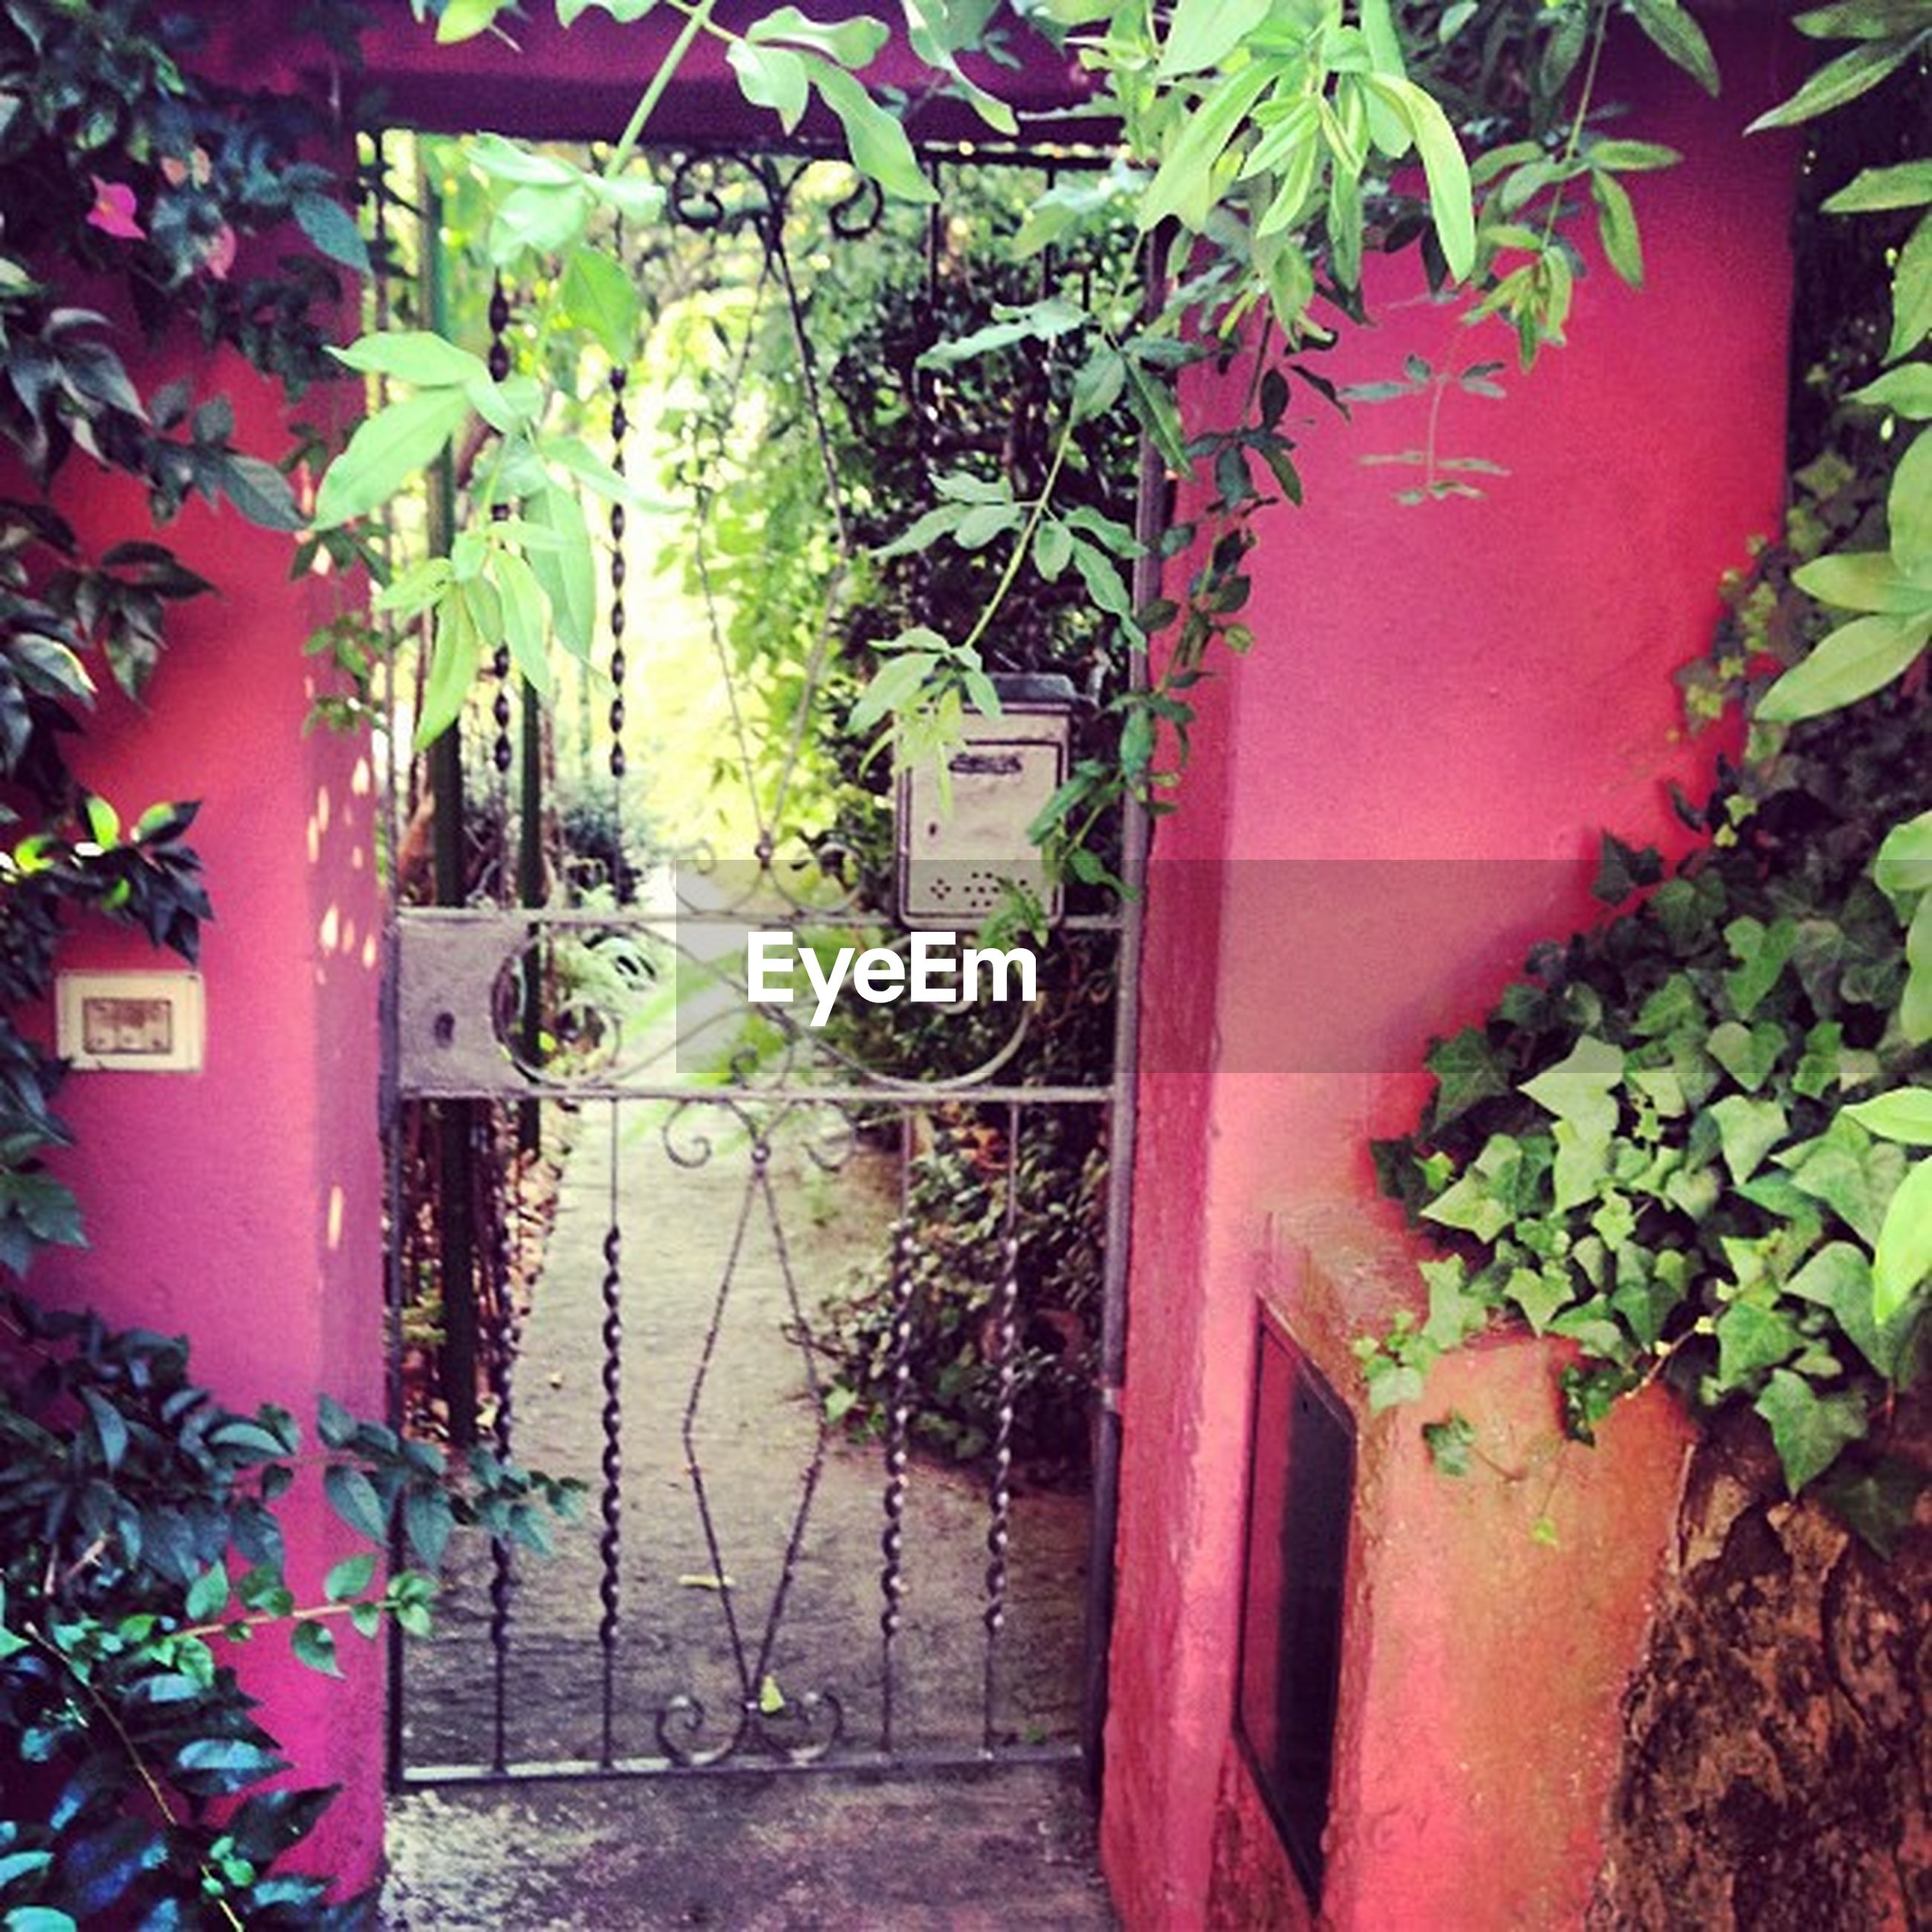 plant, architecture, built structure, building exterior, potted plant, growth, house, green color, wall - building feature, ivy, wall, leaf, residential structure, residential building, door, closed, outdoors, growing, no people, day